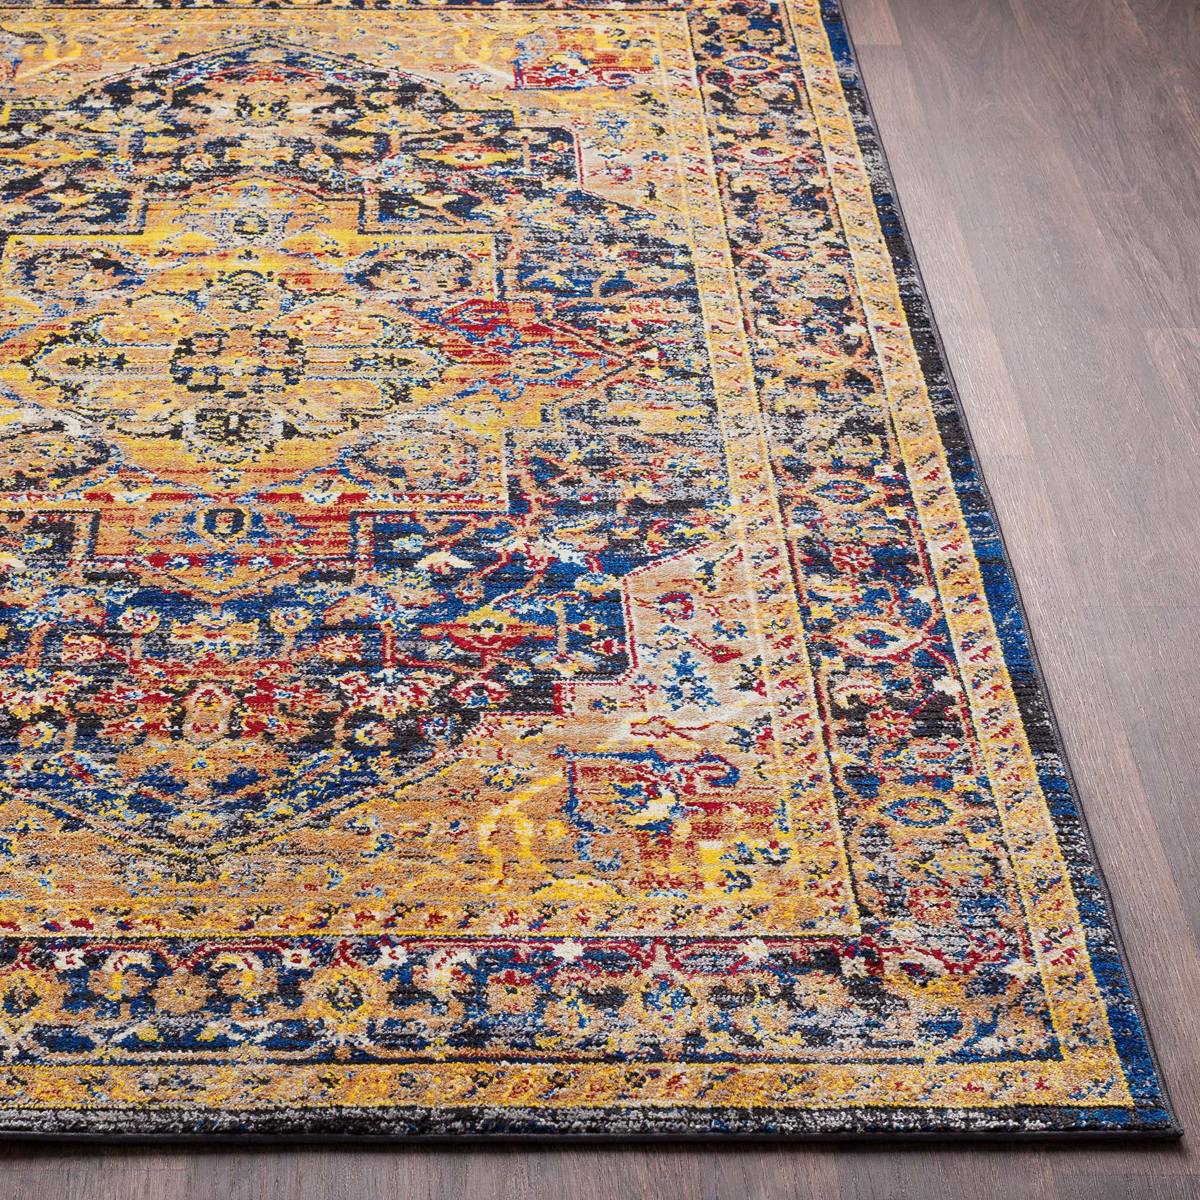 Unique Turkish rug with distinct yellow, blue and red pattern from the Surya Alchemy Collection	- Close-up